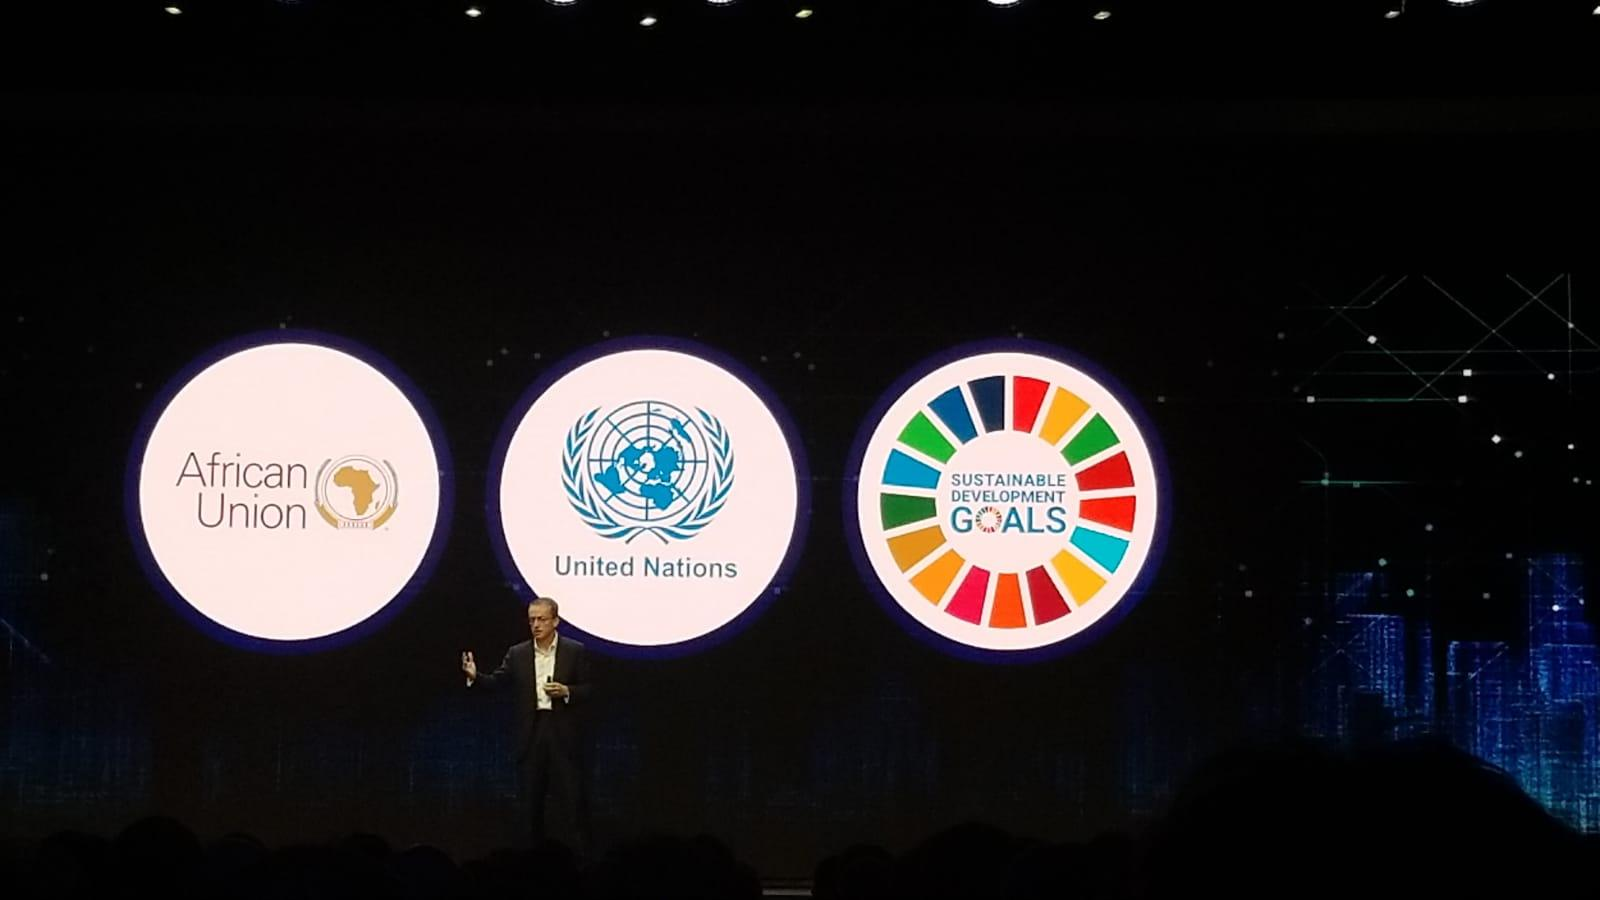 VMware collaboration with African Union and United Nations